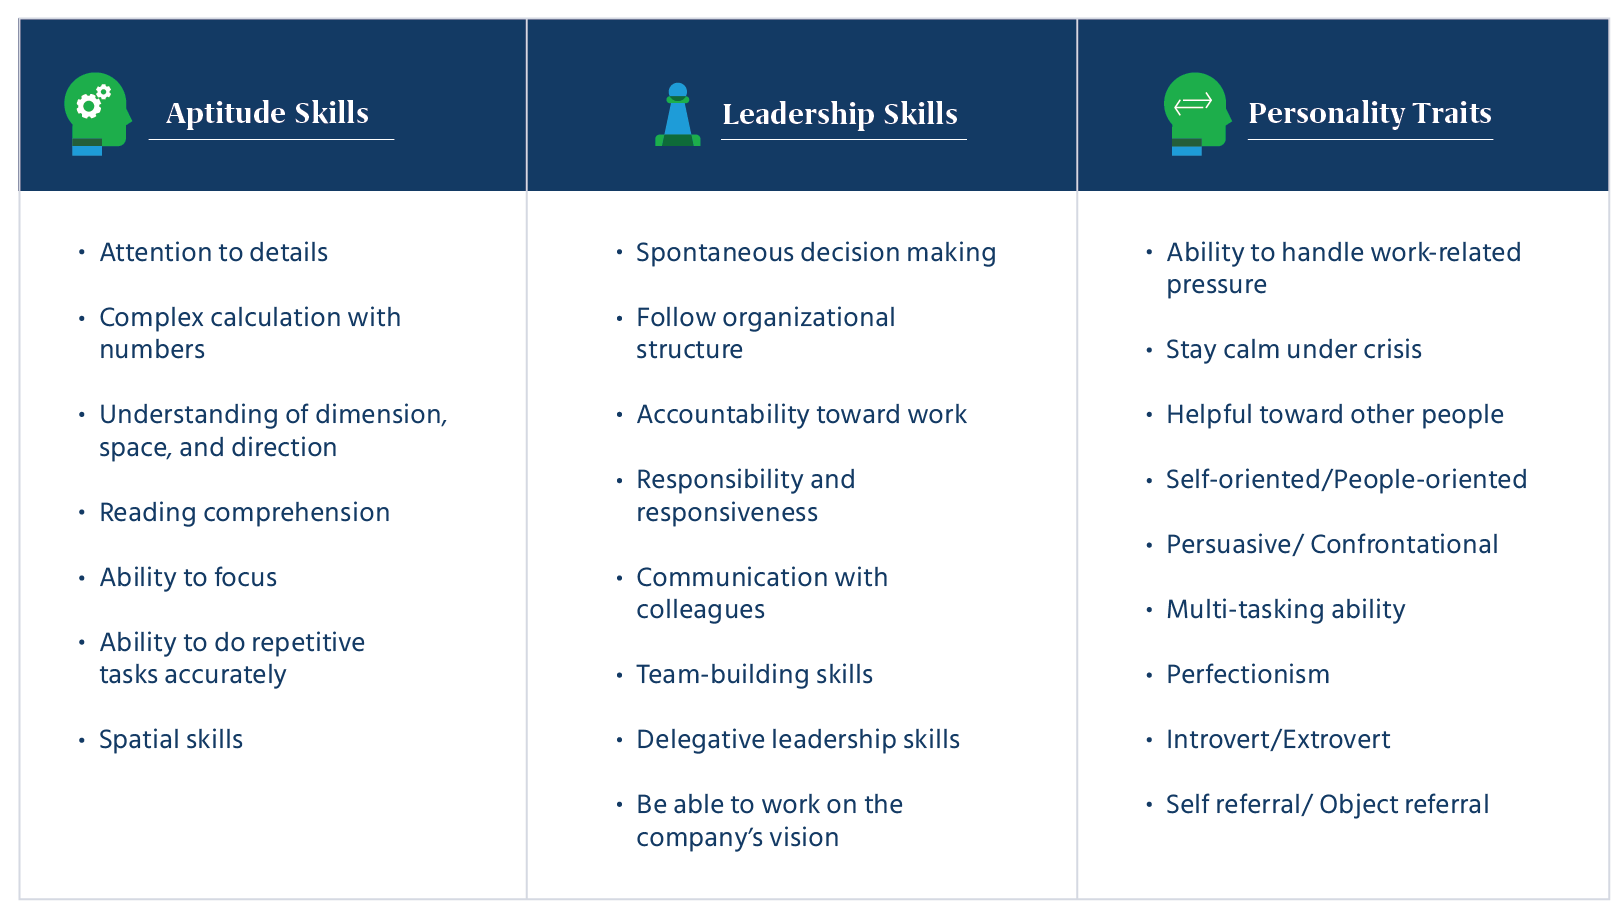 specific skills that psychometric tests reveal